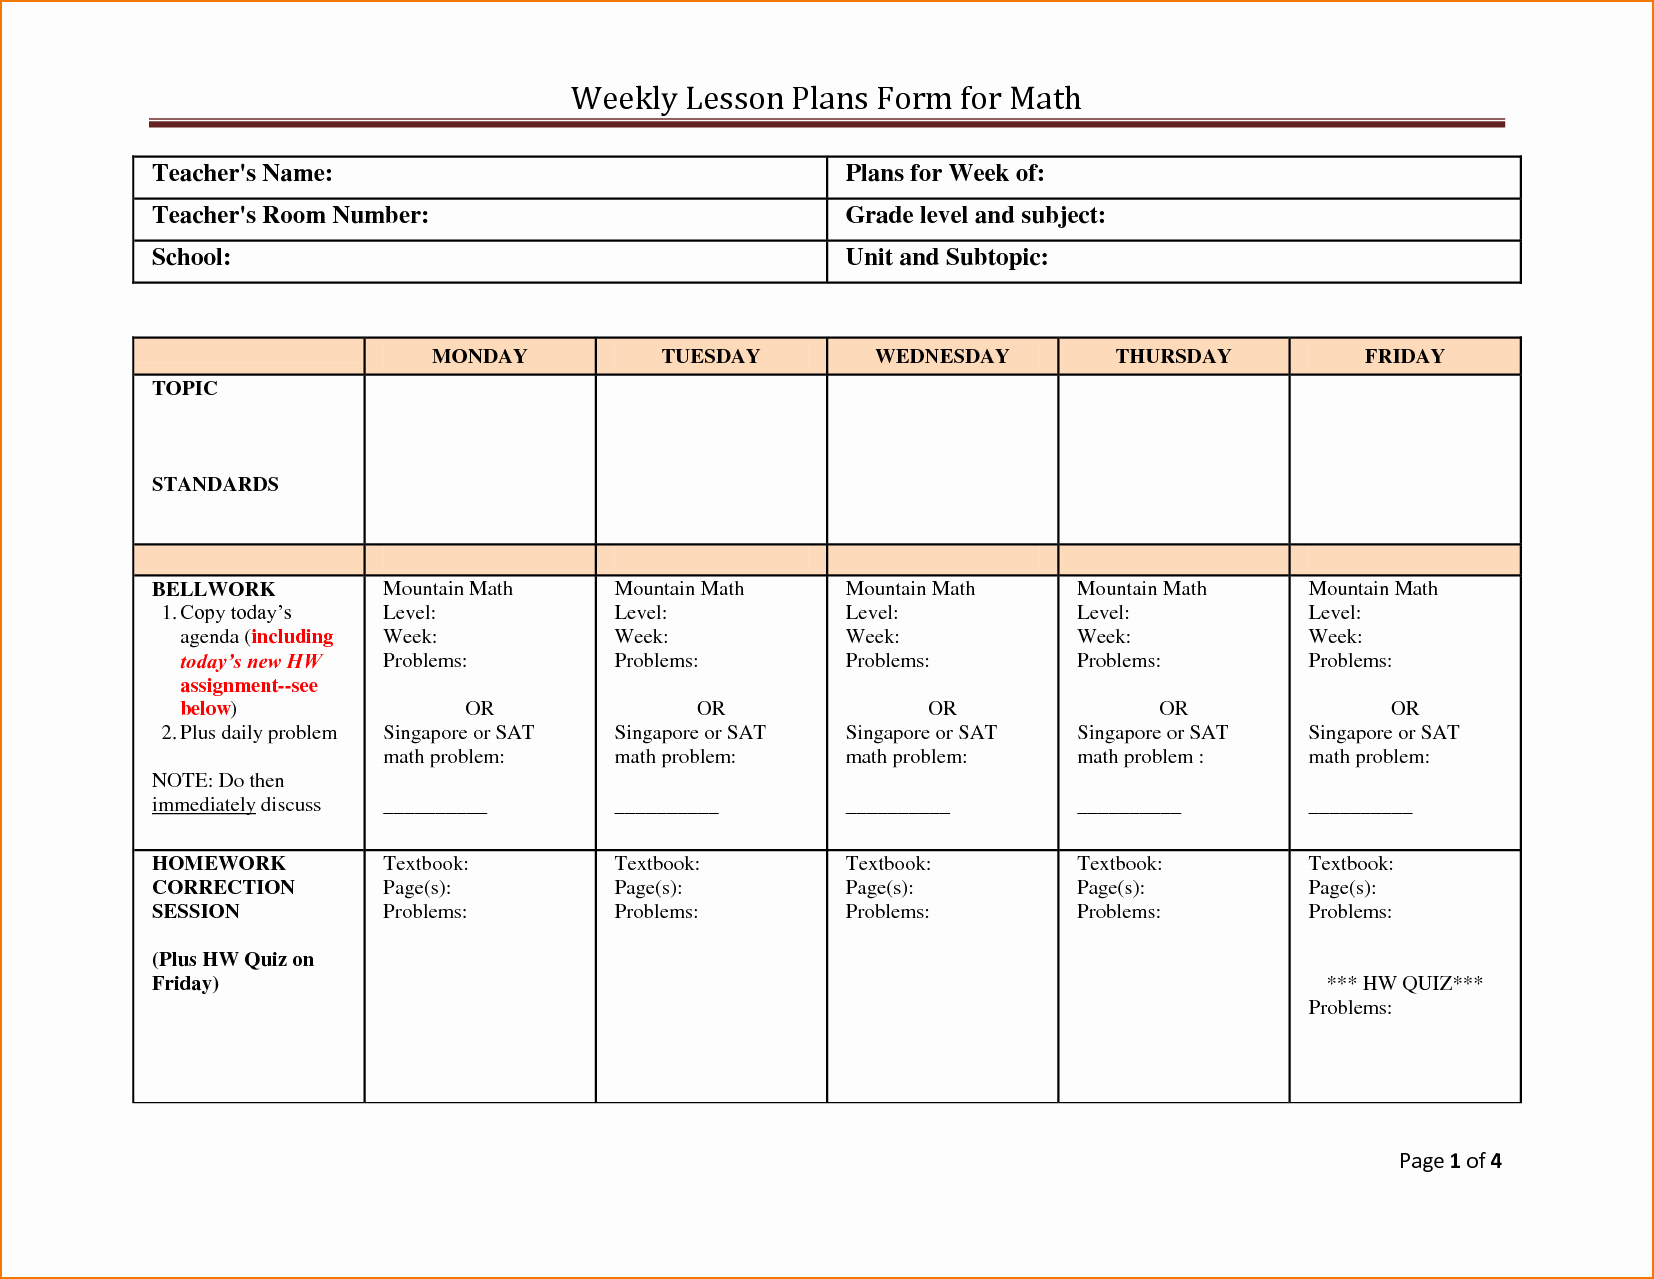 Weekly Lesson Plan Templates Elementary Inspirational 5 Weekly Lesson Plan Template